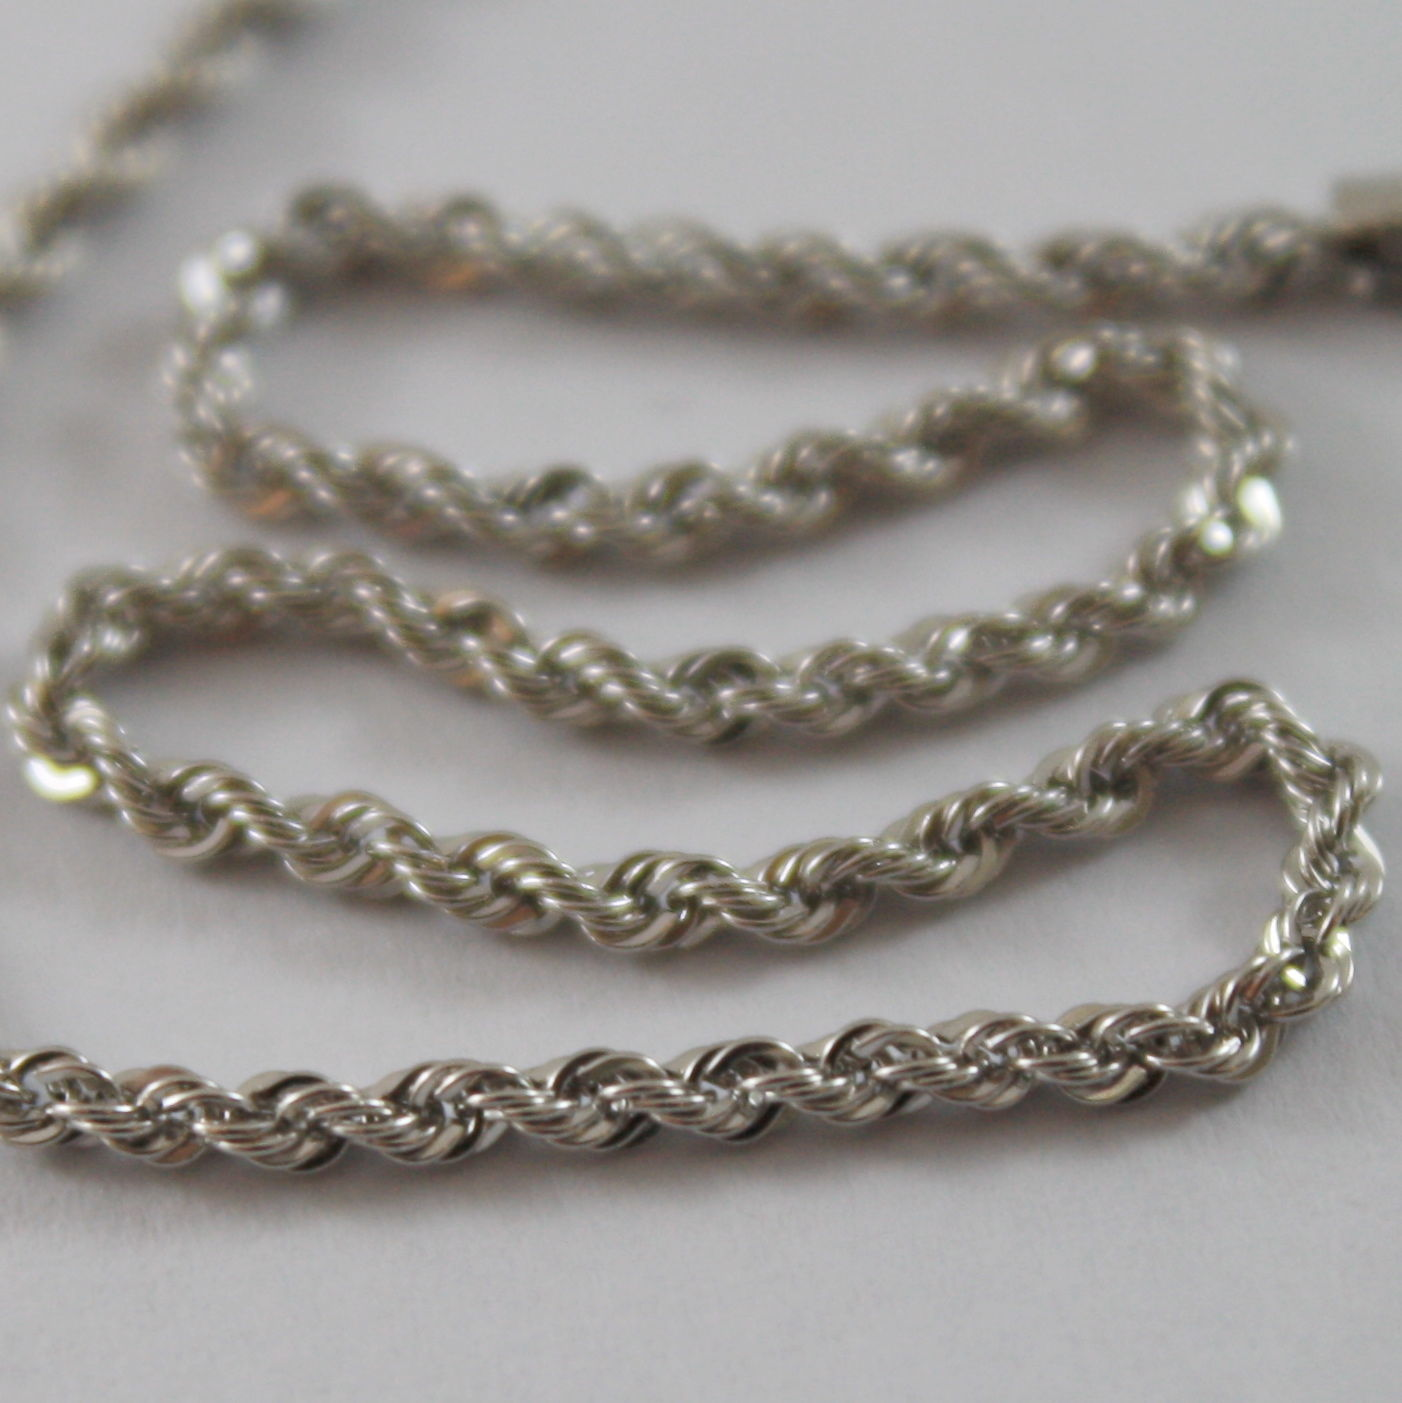 18K WHITE GOLD CHAIN NECKLACE, BRAID ROPE 15.75 INCH LONG, MADE IN ITALY